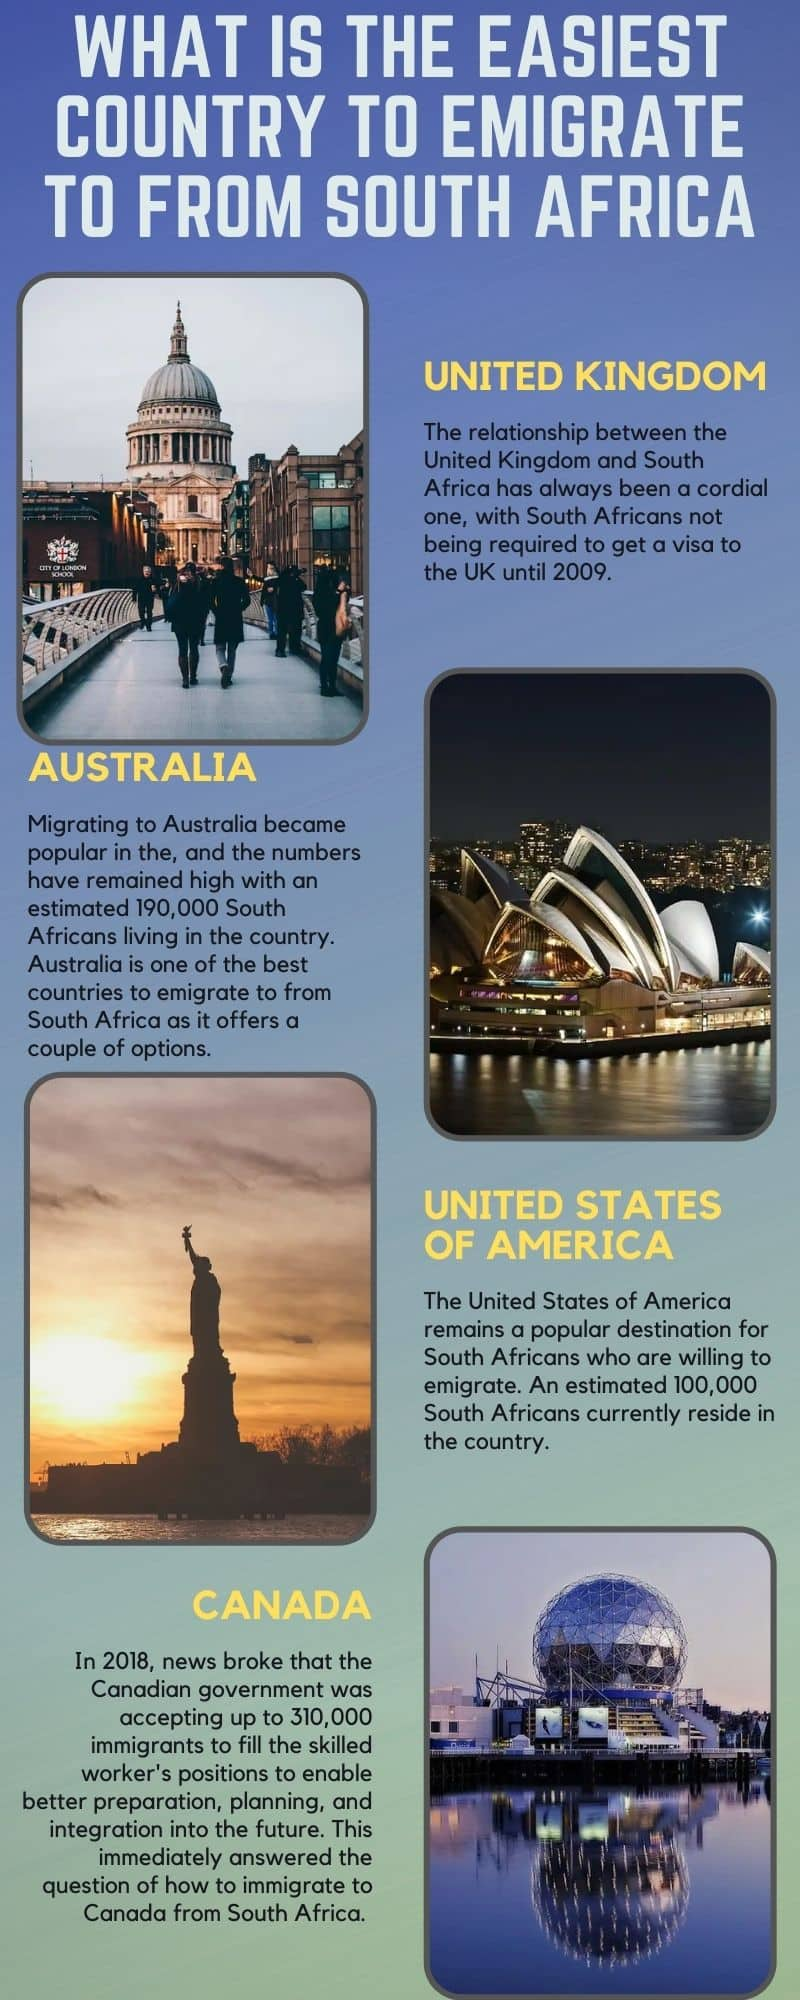 easiest country to emigrate to from South Africa